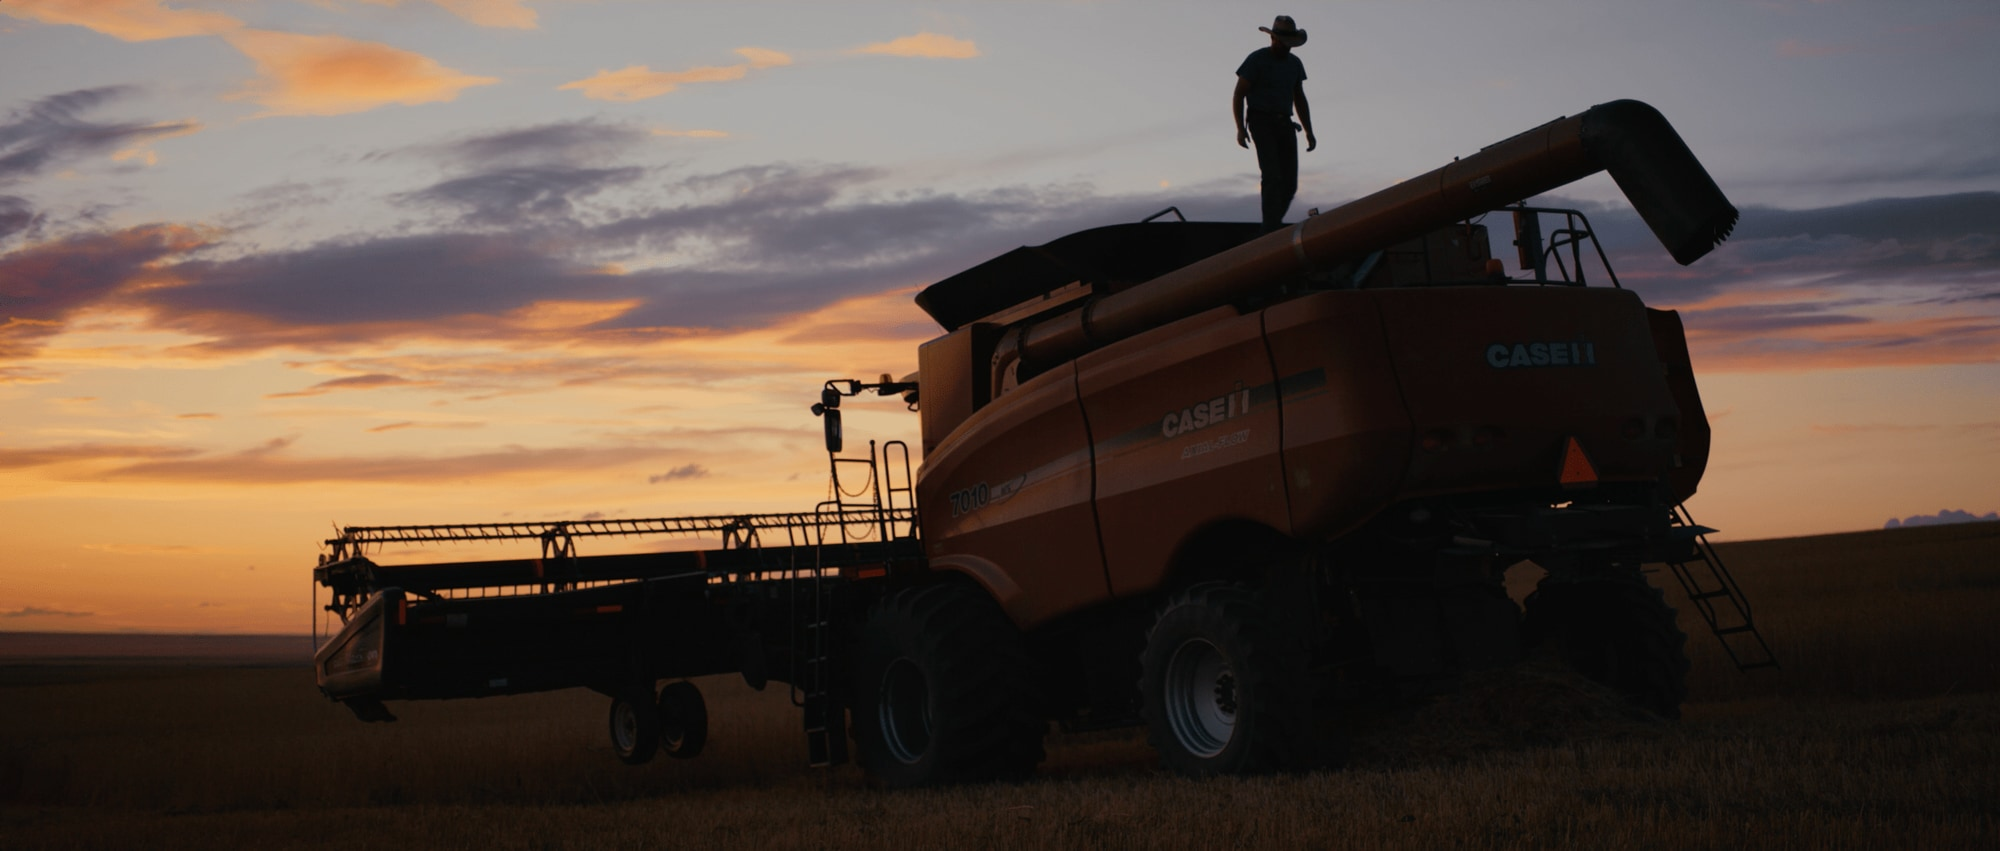 A harvester vehicle.